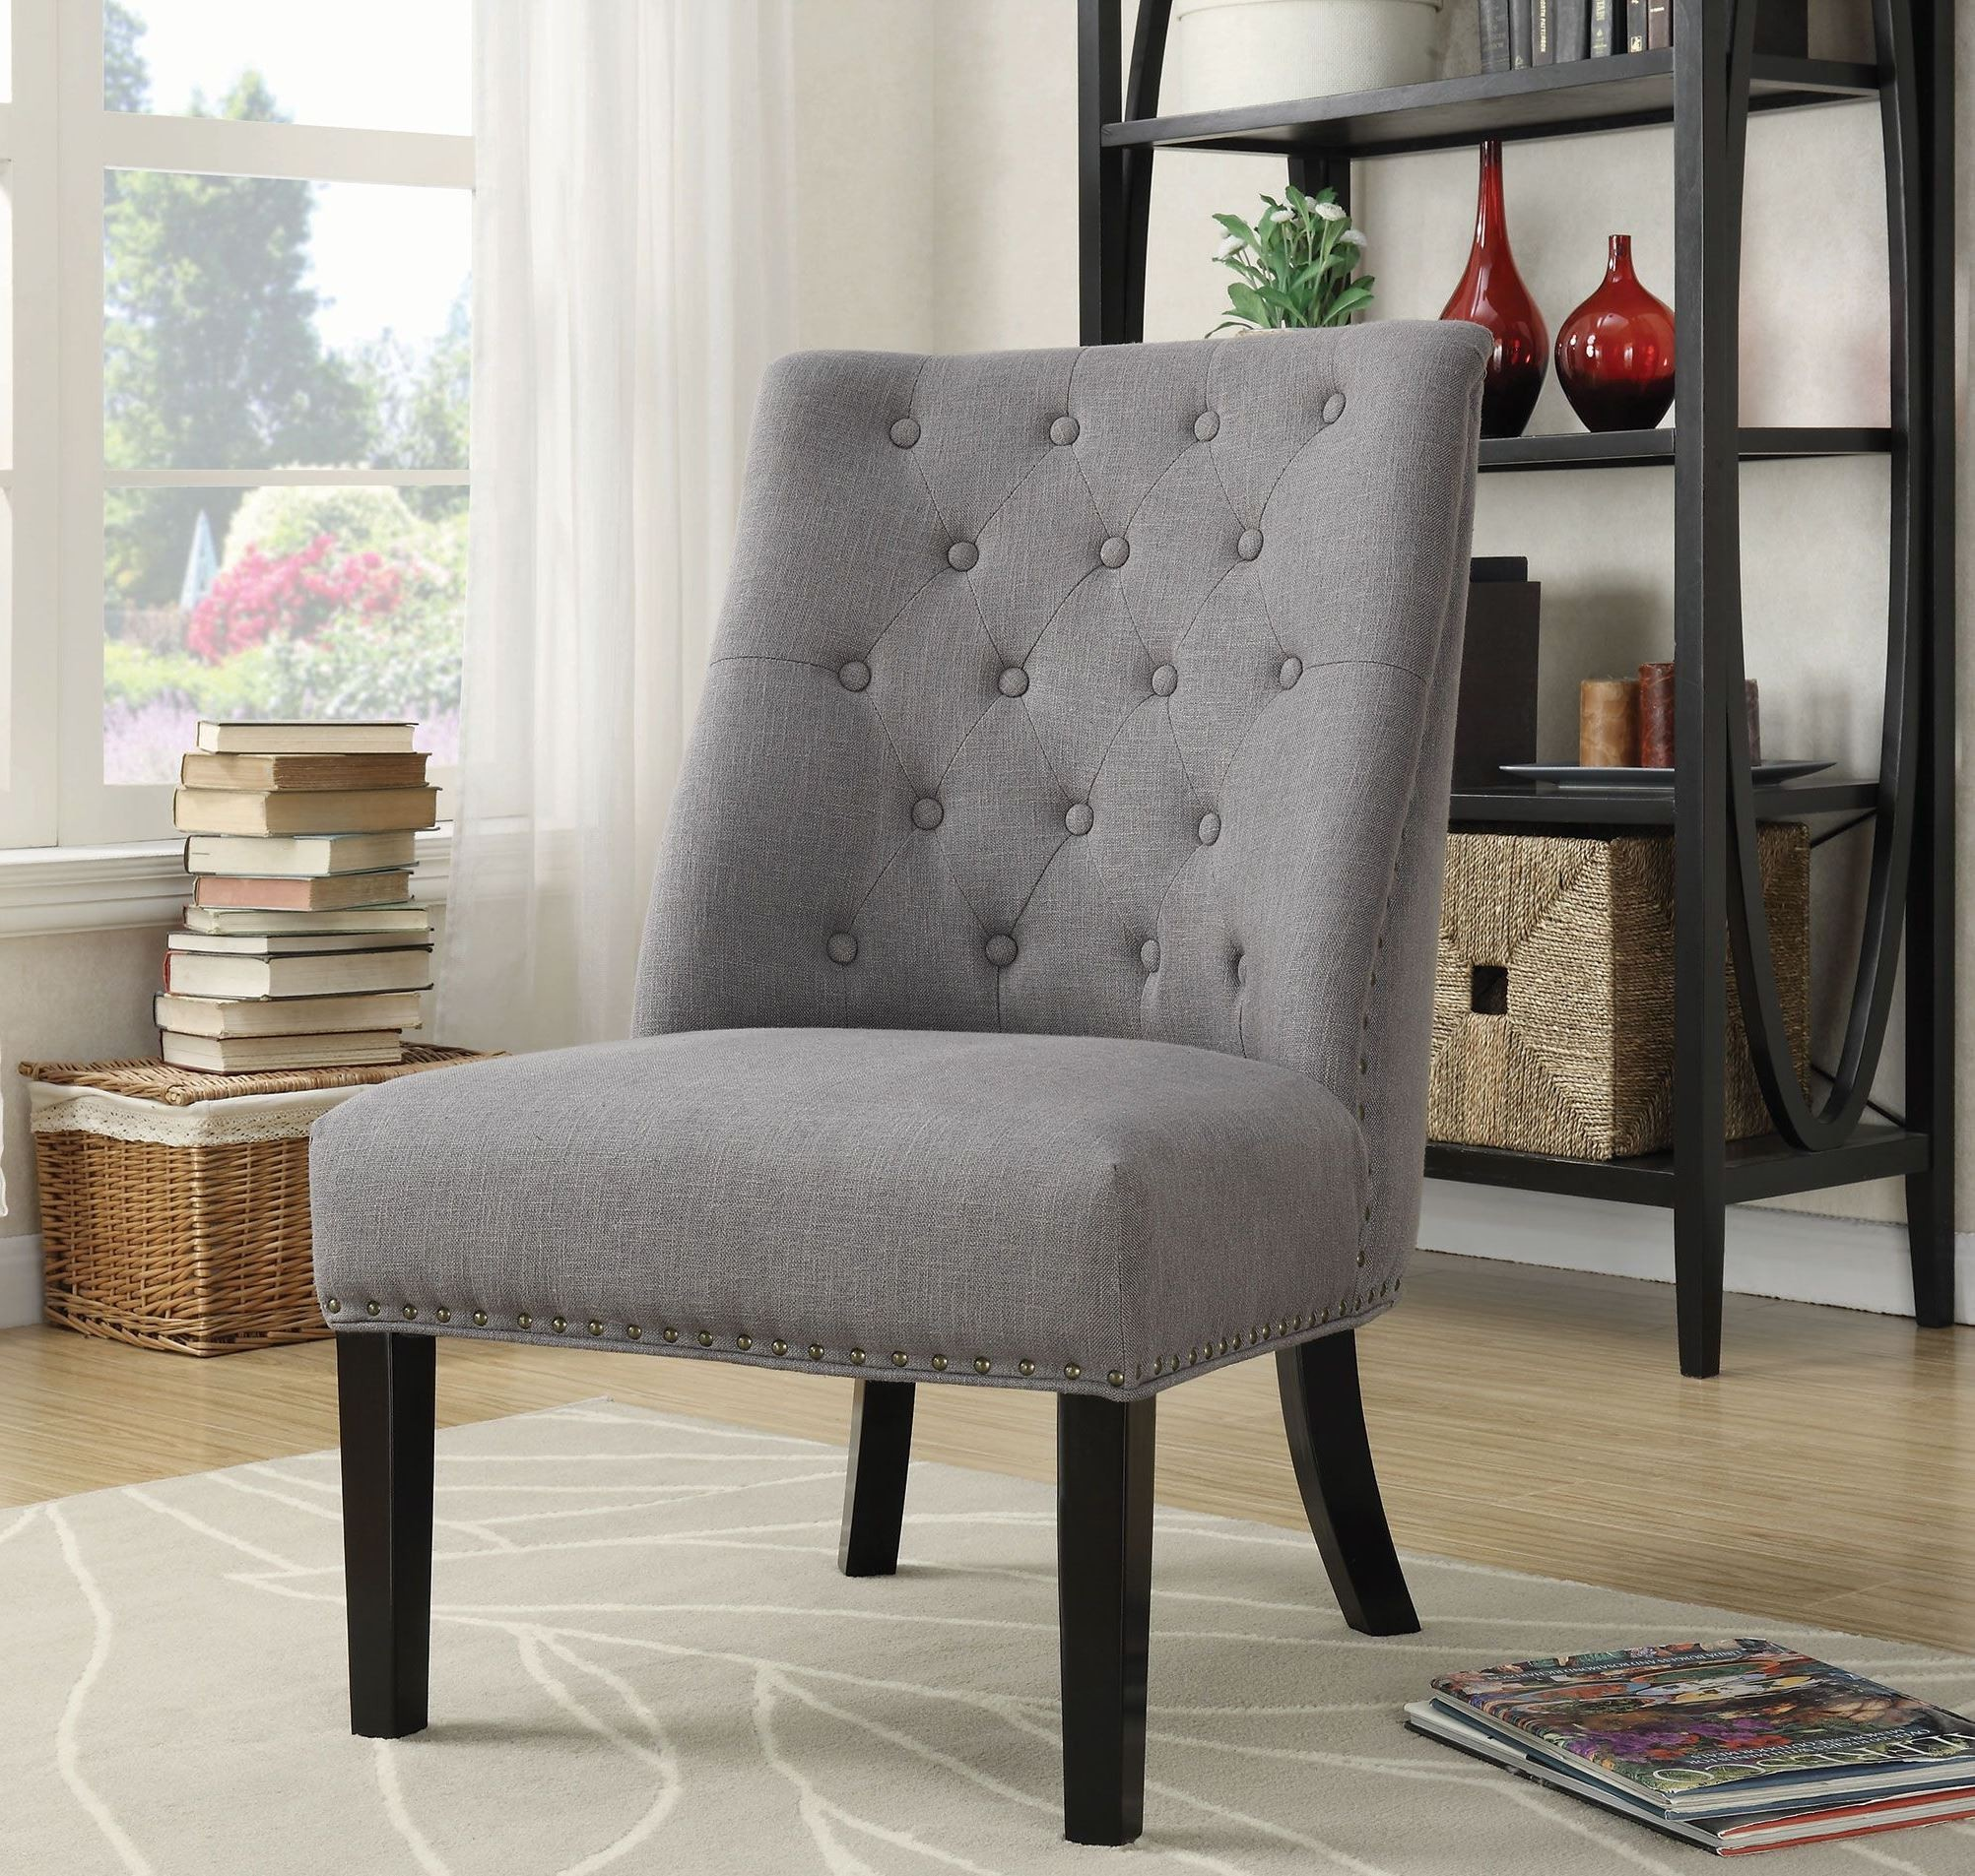 Grey Accent Chairs Grey And Black Accent Chair 902923 Coaster Furniture